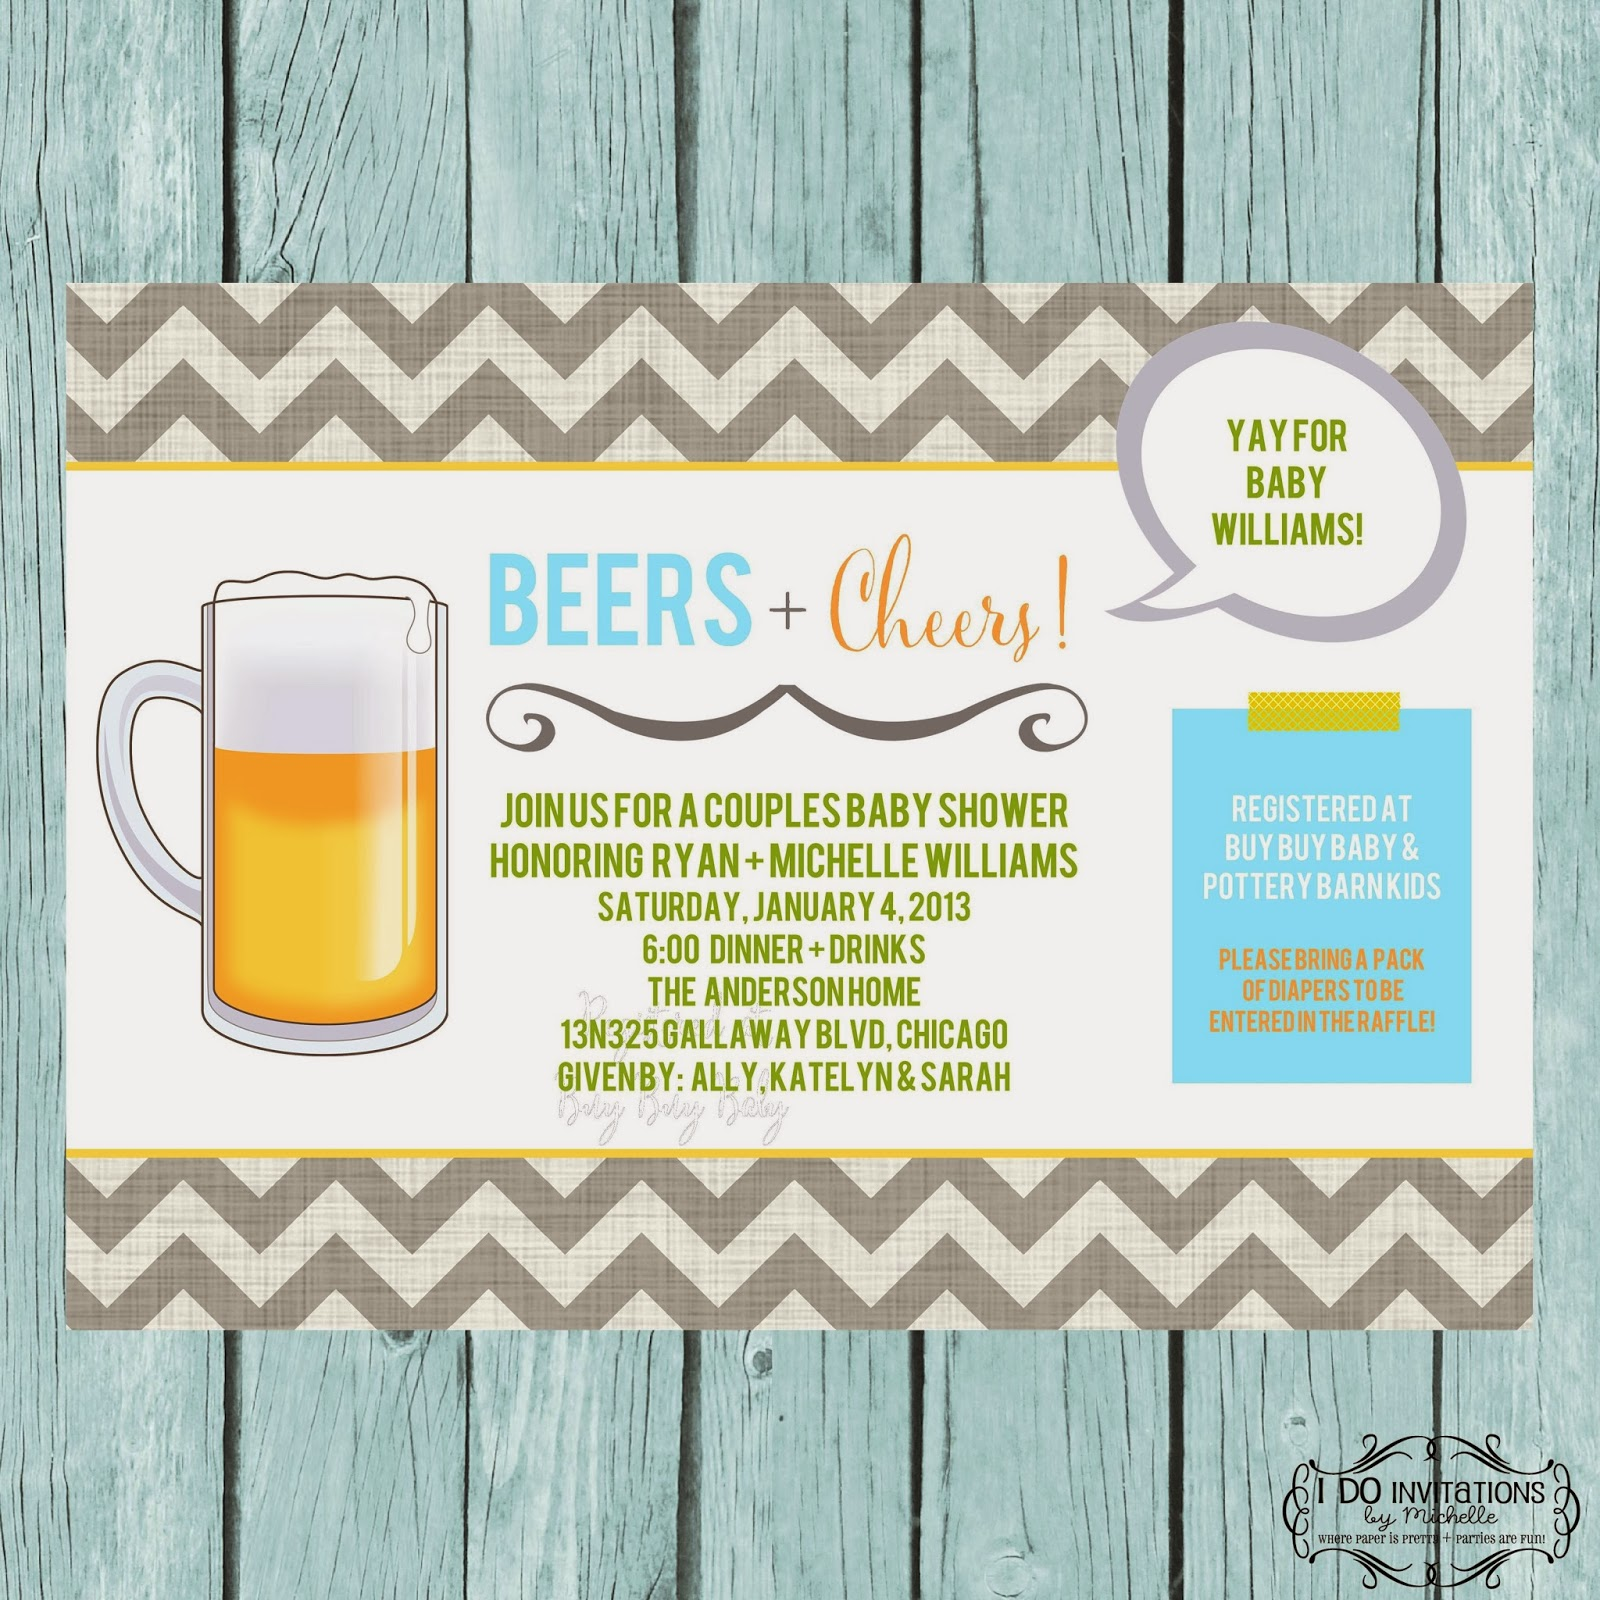 ... Beers + Cheers Couples Baby Shower Invitation. It Was One Of Those  Ideas That I Had Spinning In My Head That Panned Out Exactly As I Had  Envisioned!